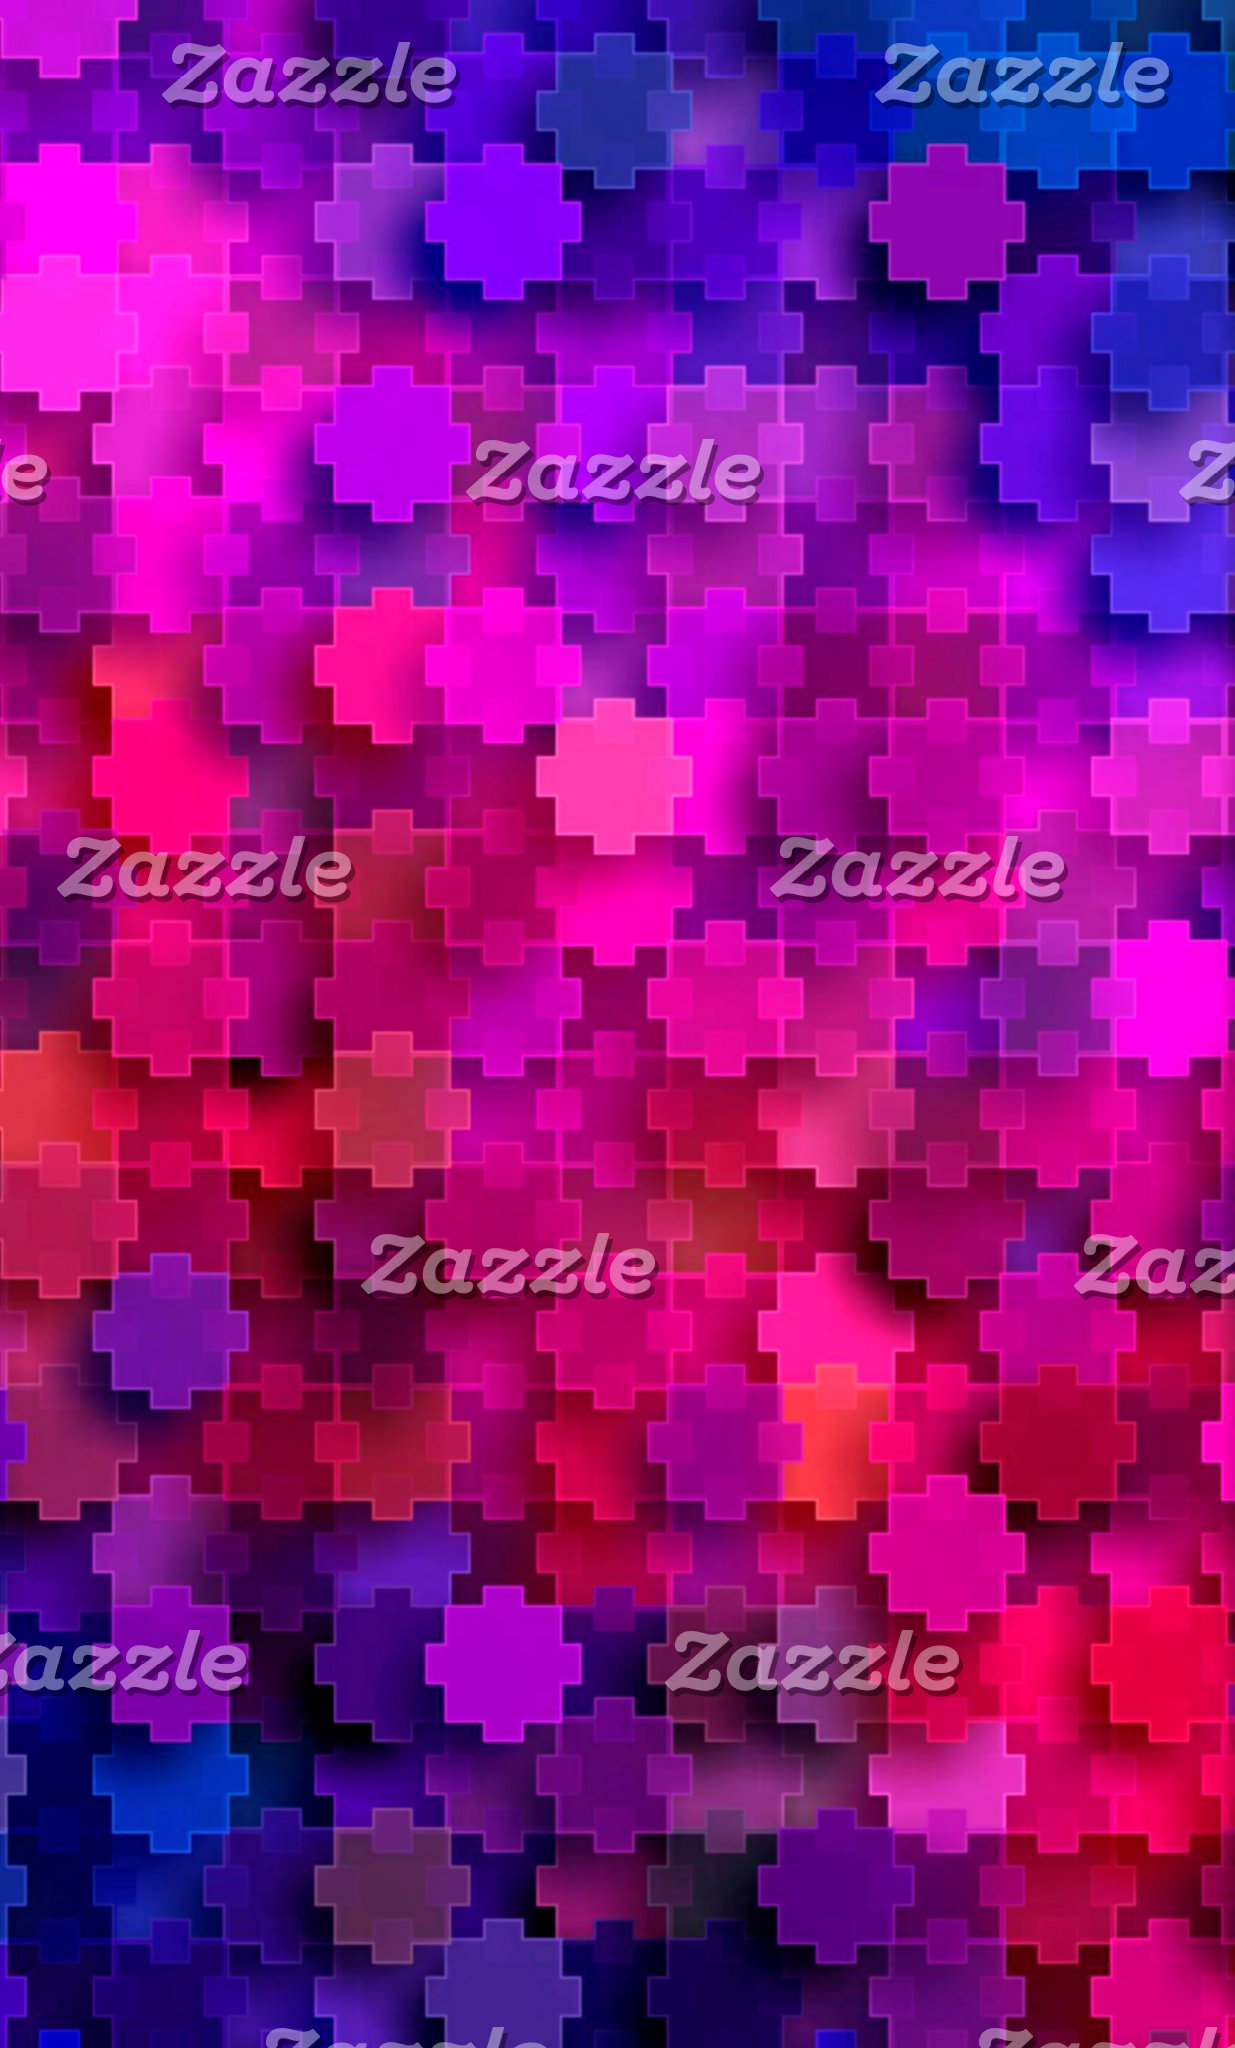 Pink and Blue Square Puzzle Pieces Pattern